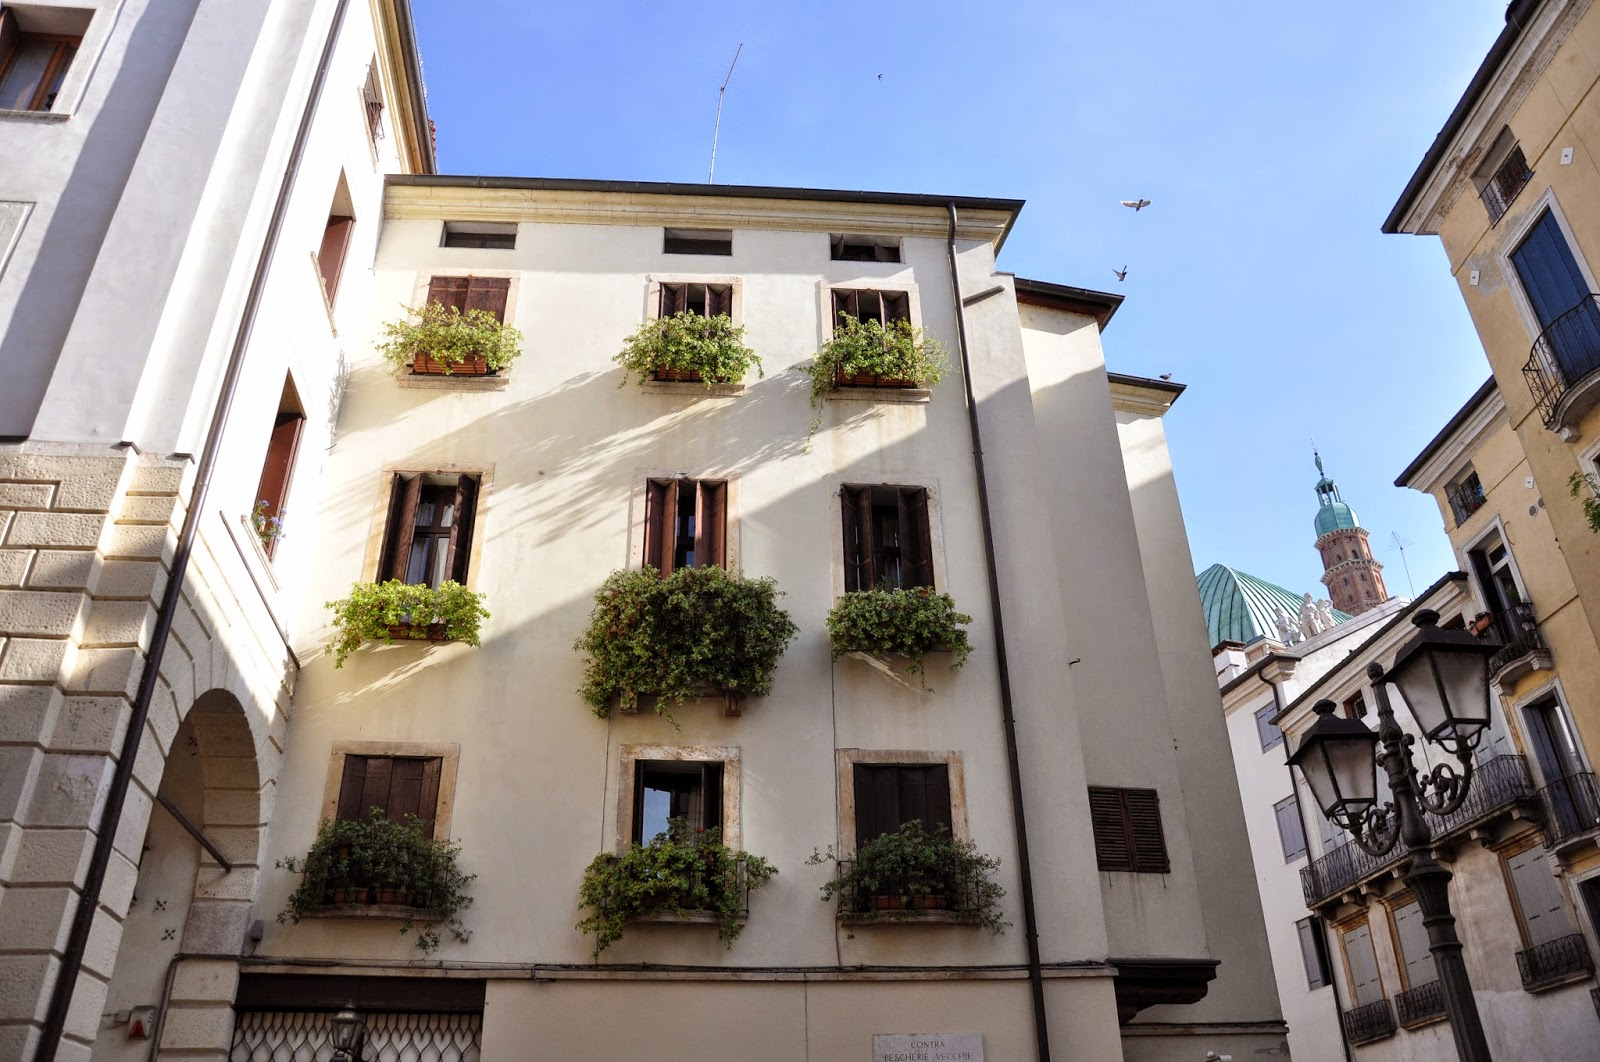 Windowsills overhang with green plants  in Vicenza, Italy